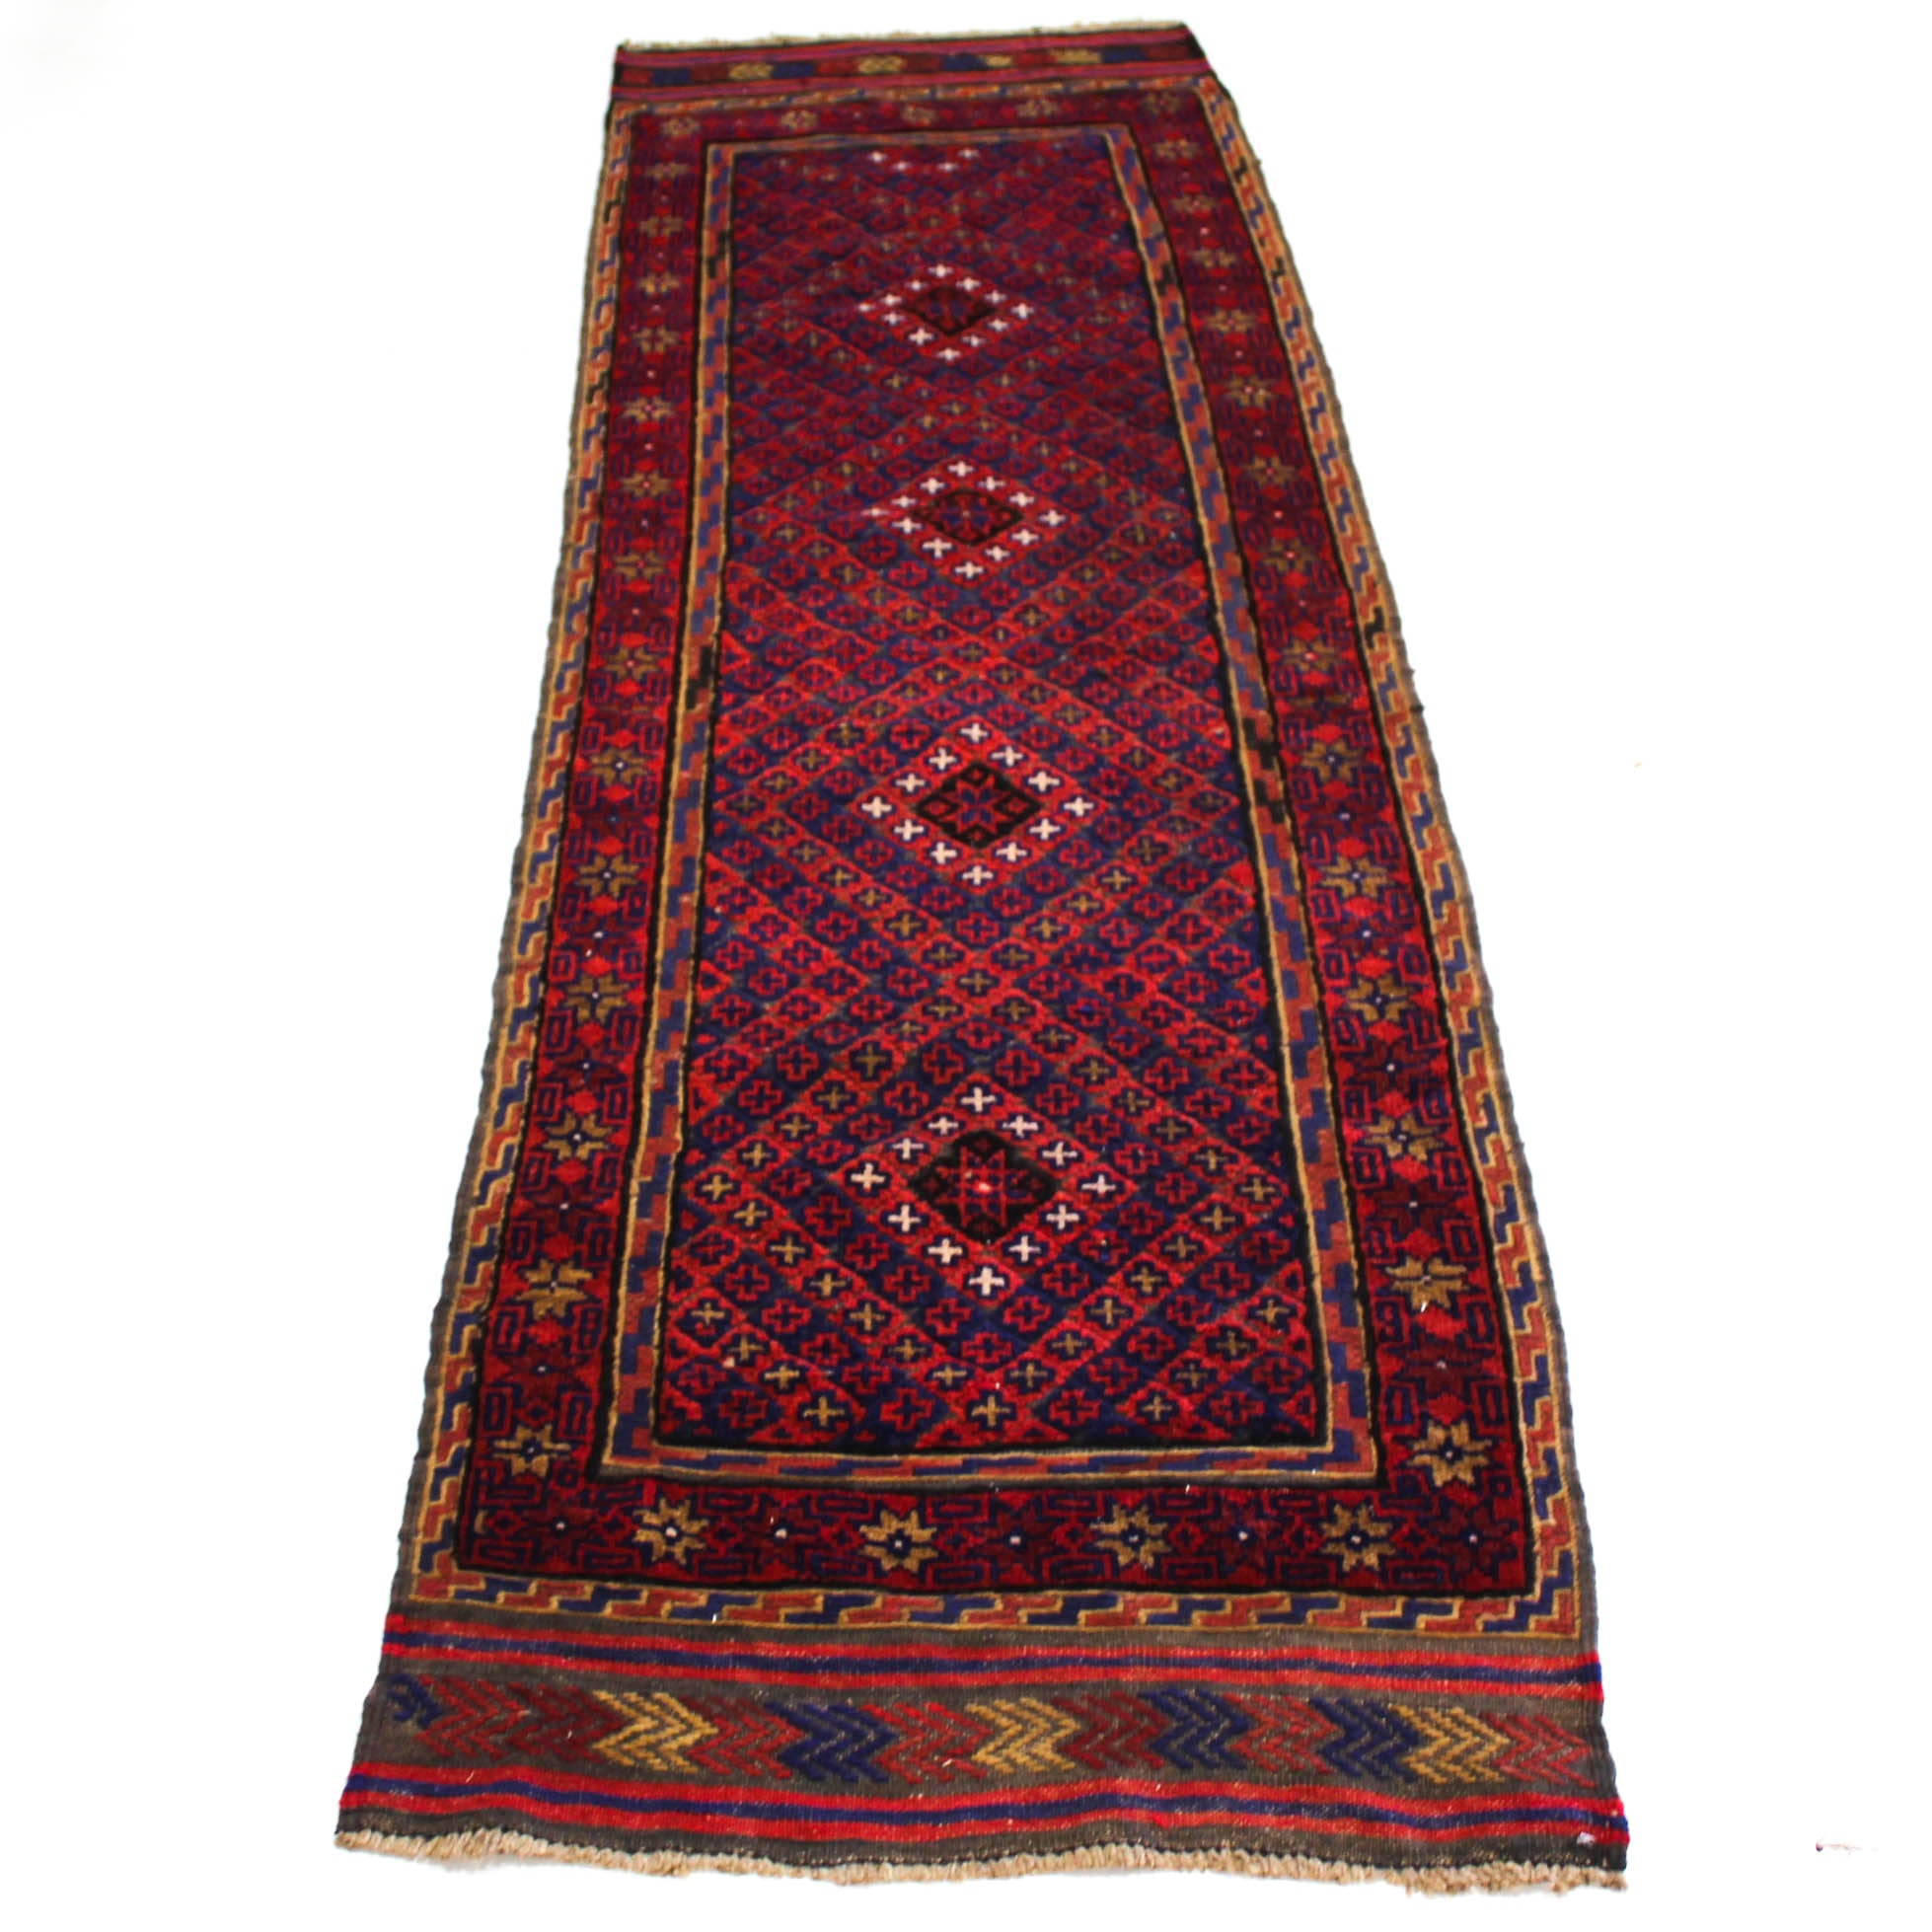 2'6 x 8'8 Semi-Antique Hand-Knotted Afghani Baluch Carpet Runner